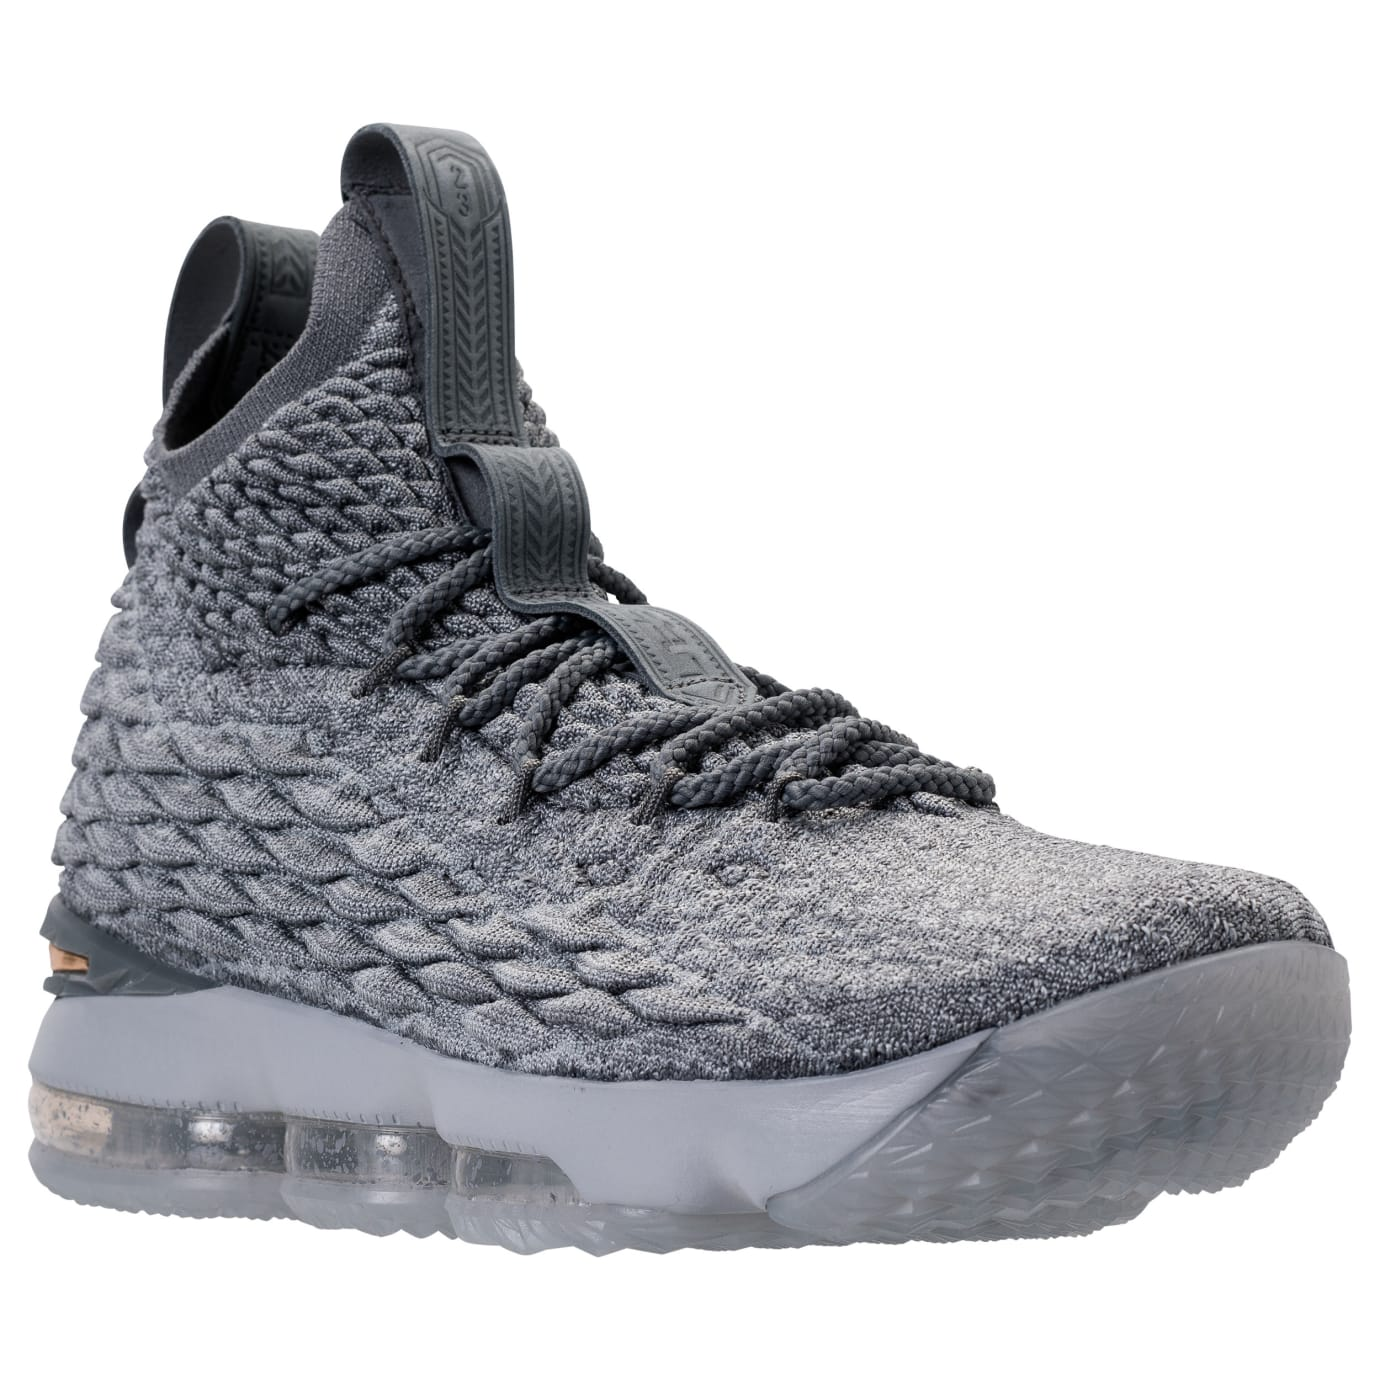 6adaf1049053 Image via US11 Nike LeBron 15 City Edition 897648-005